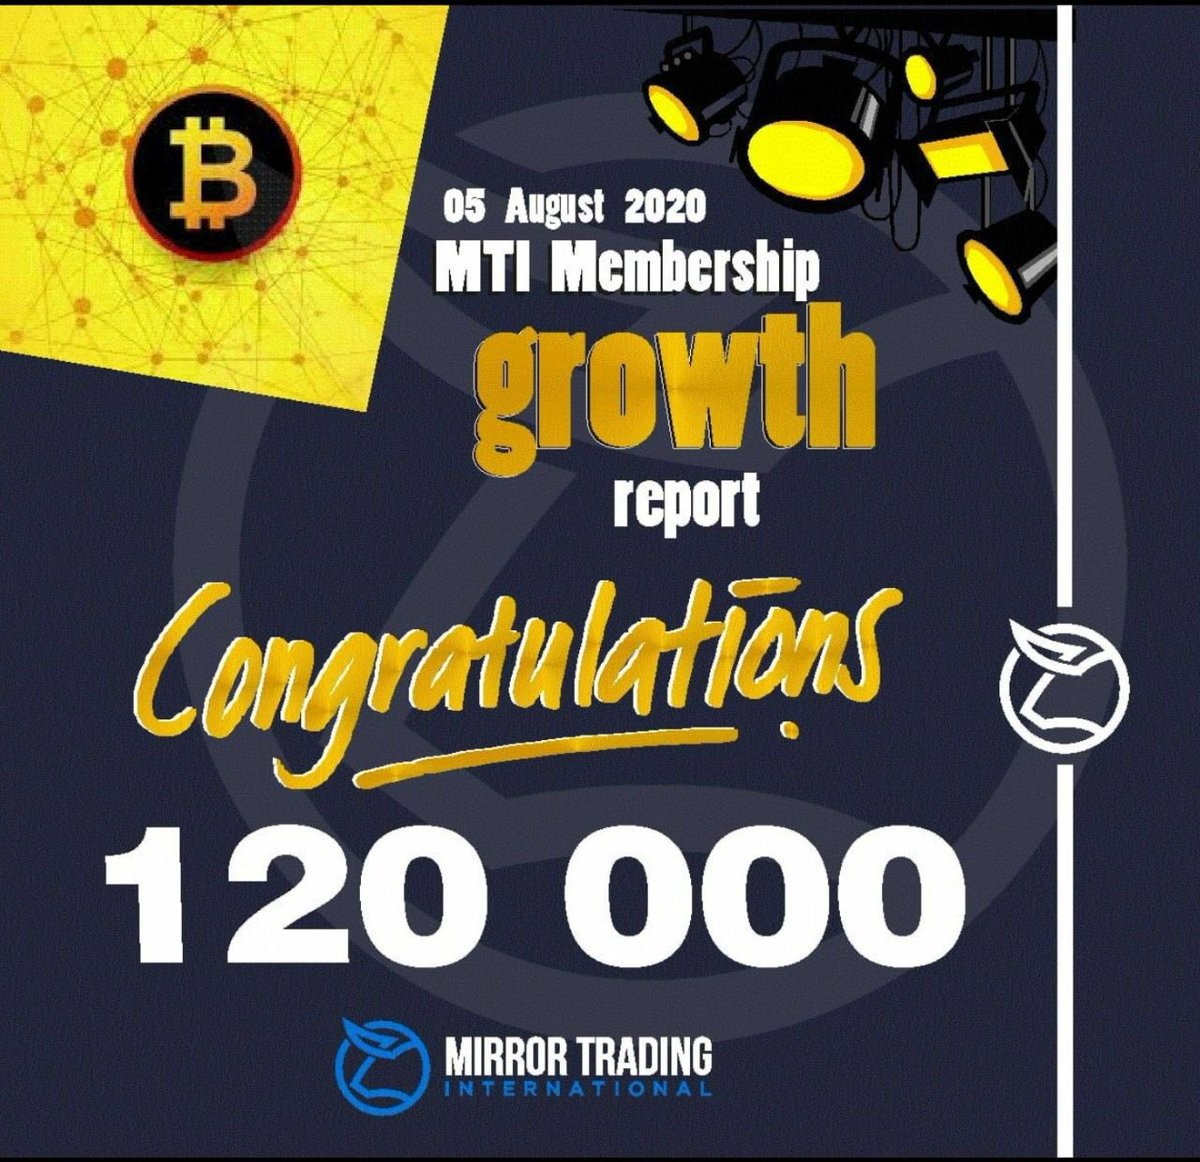 MTI growing fast, don't left behind To be in our team use the link in profile,   #bitcoin #bitcoininvestment #Crypto #cryptocurrency #passiveincomepic.twitter.com/4q9nS1Cfjm